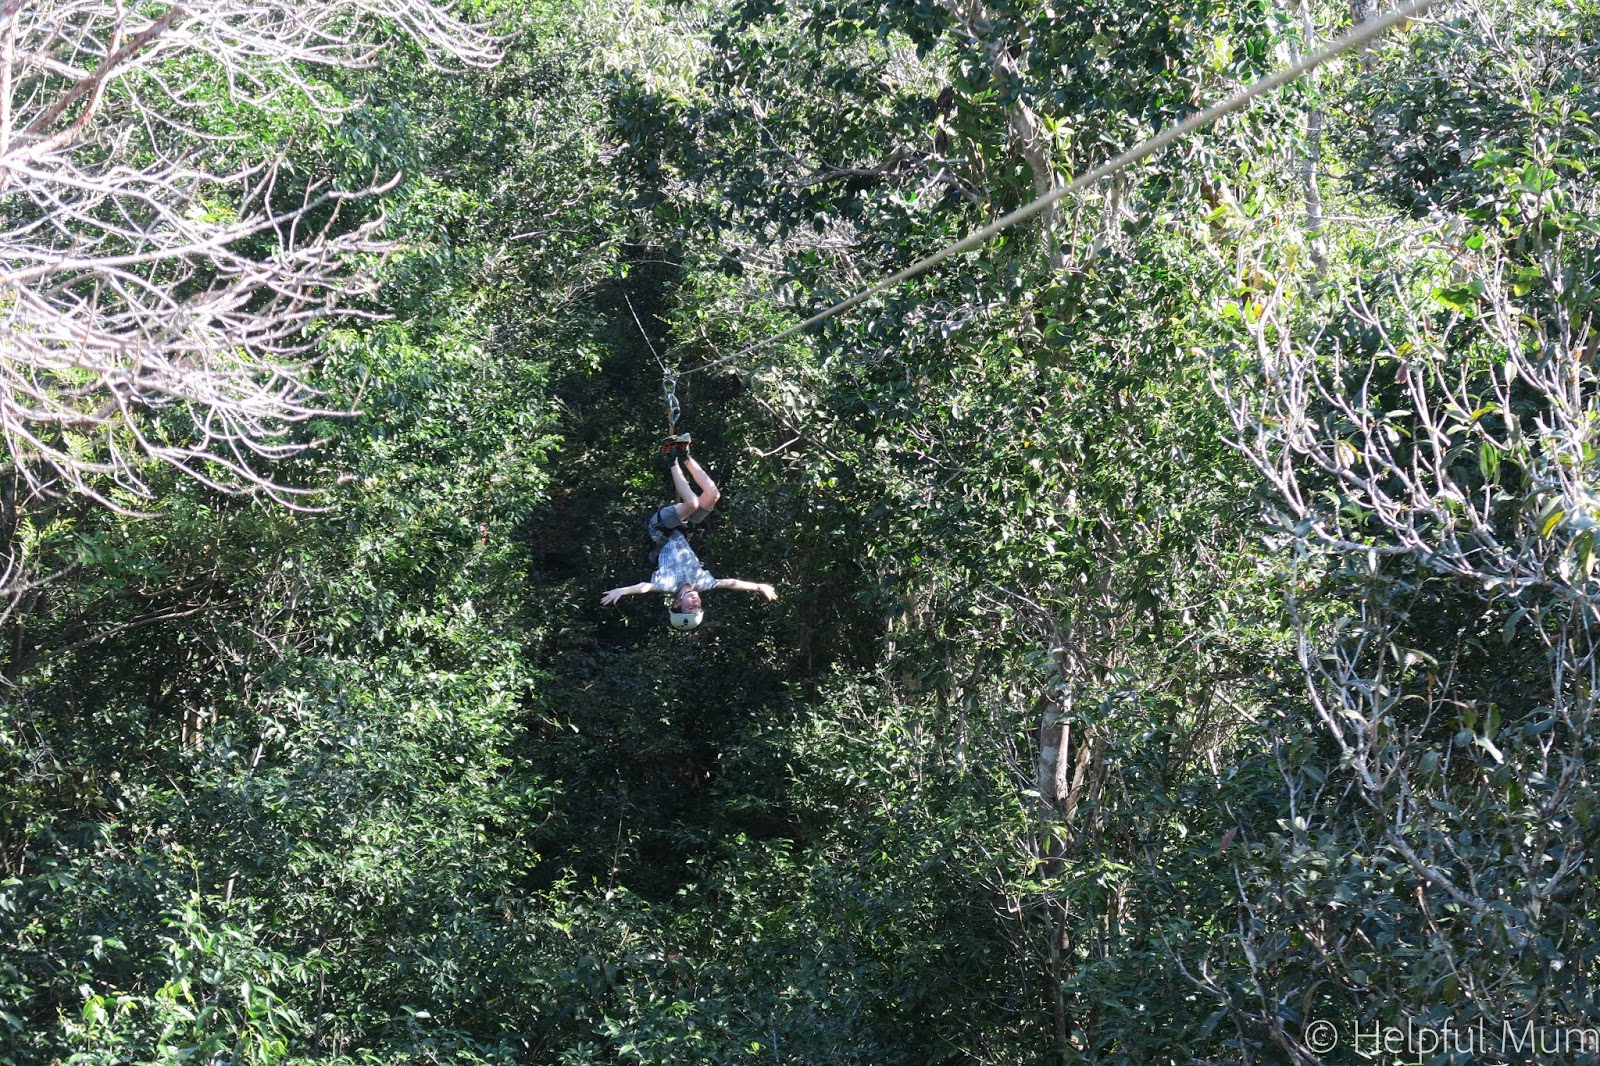 upside down zipline